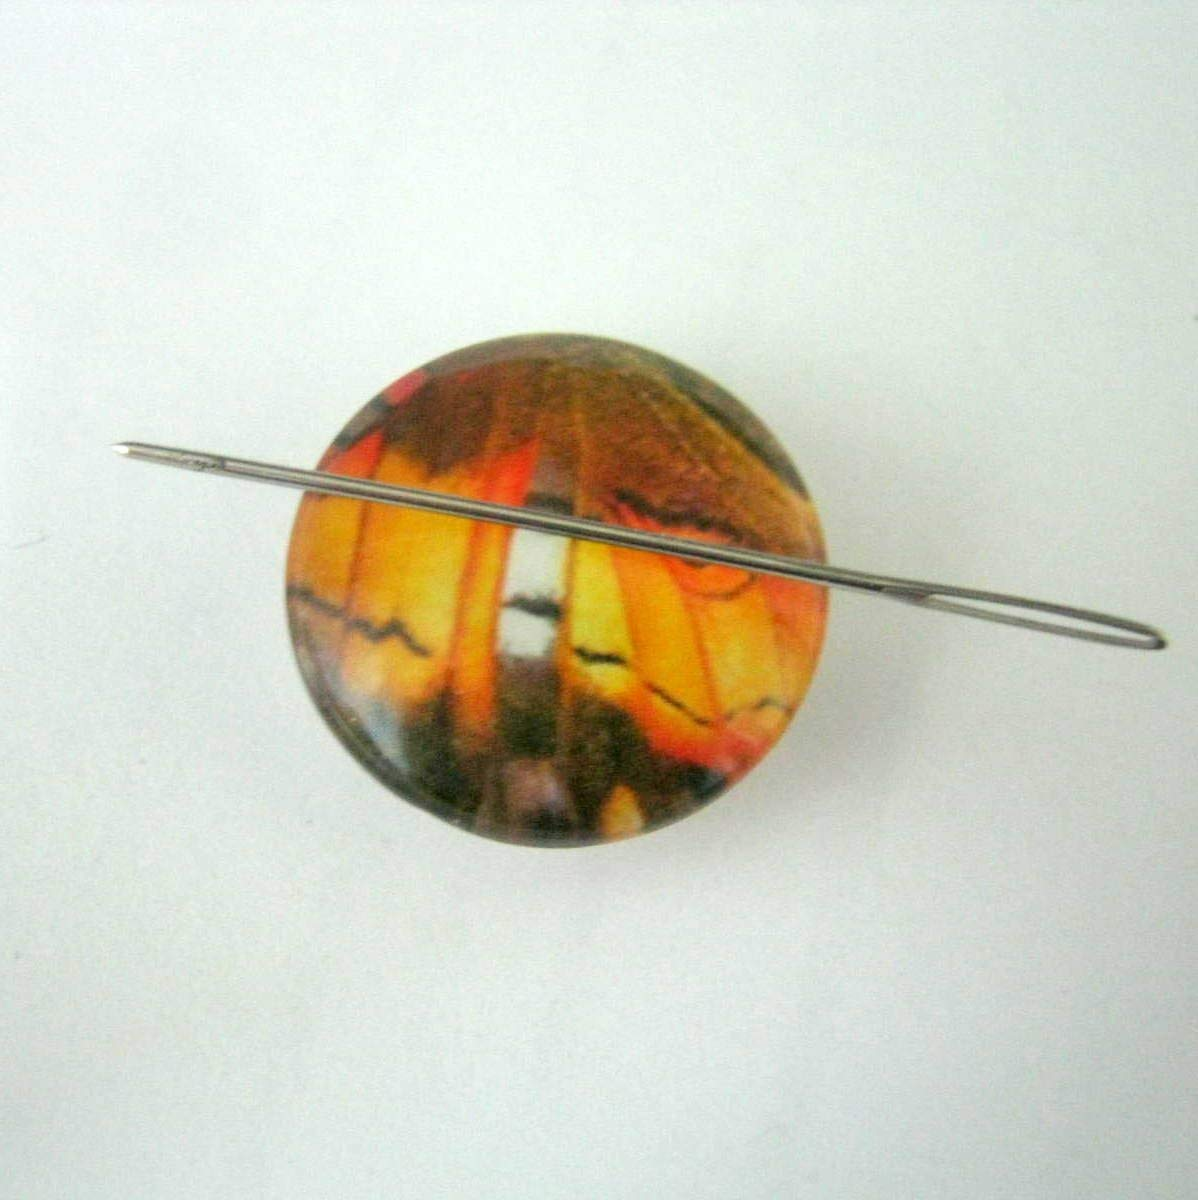 1 Orange Butterfly Glass Cabochon Needle Minder, Hand Needle Notion, Cross Stitch, Embroidery, Sewing, Needle Minder